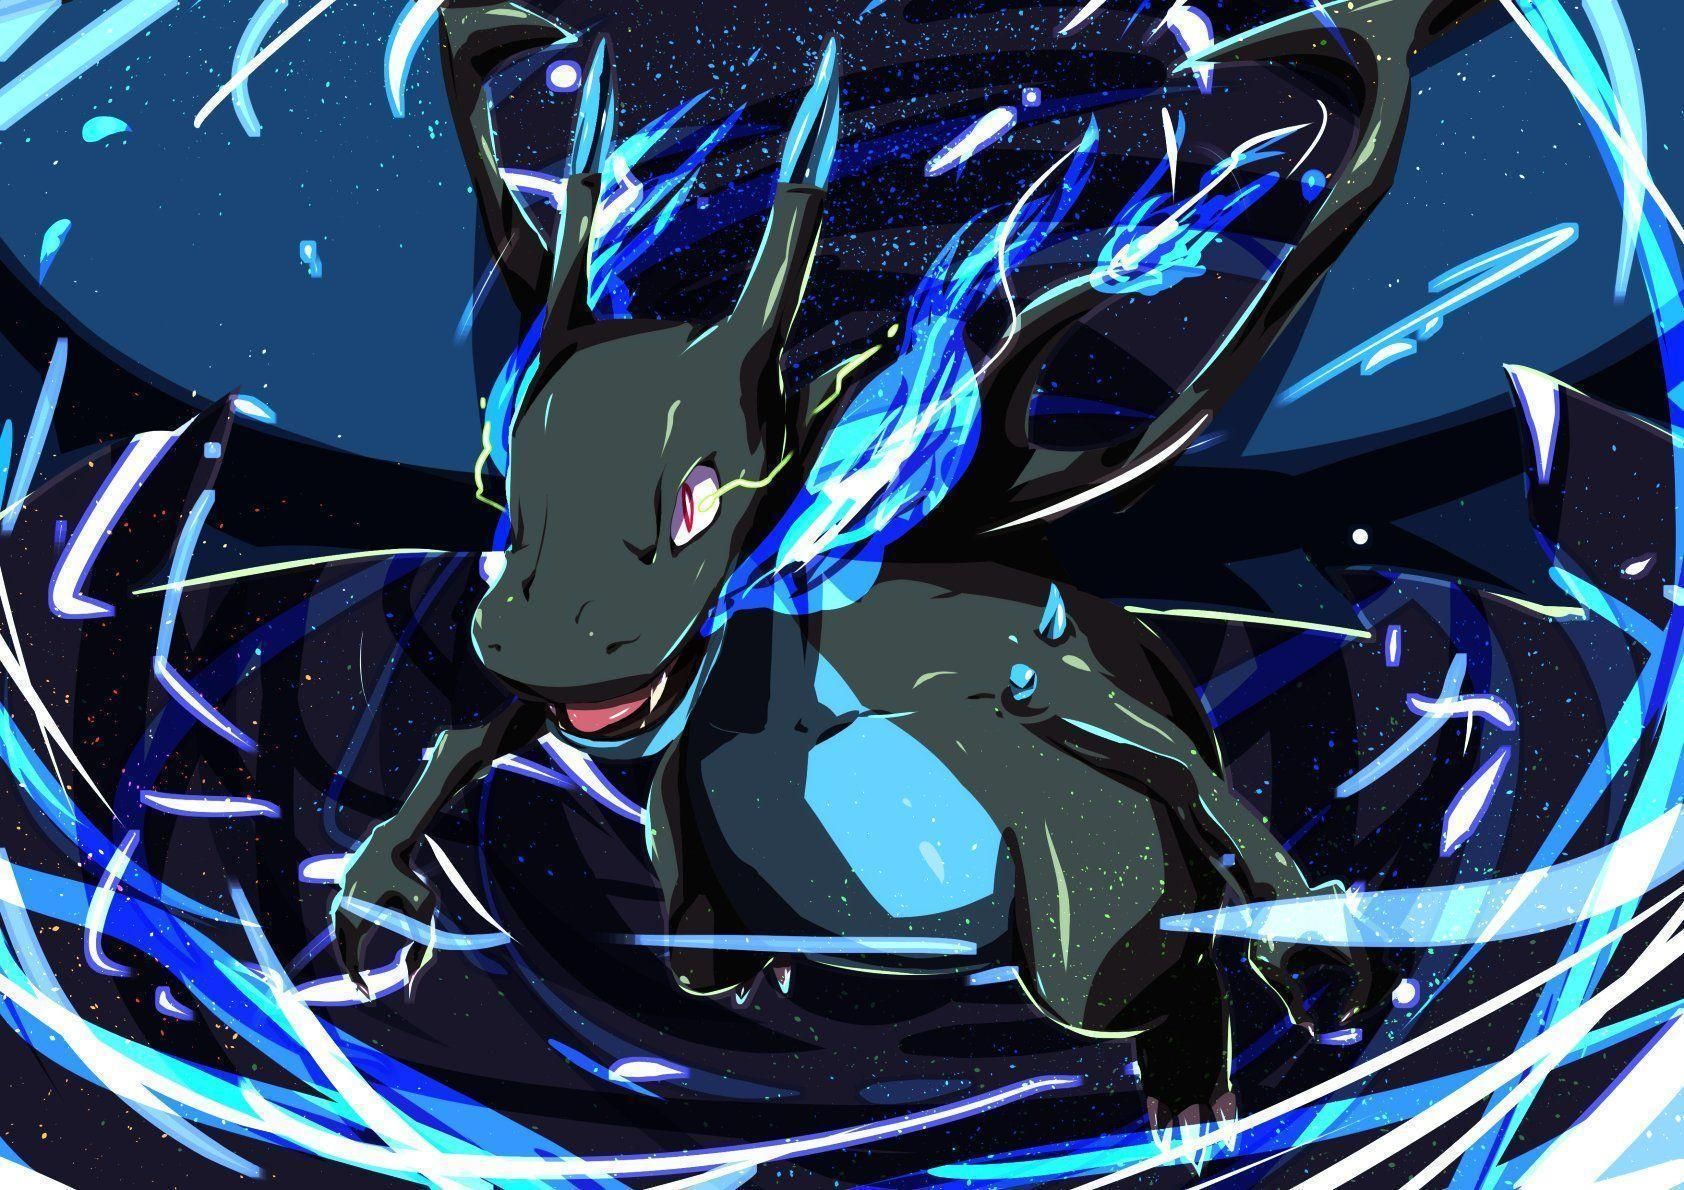 10 Mega Charizard X (Pokémon) HD Wallpapers | Background Images ...